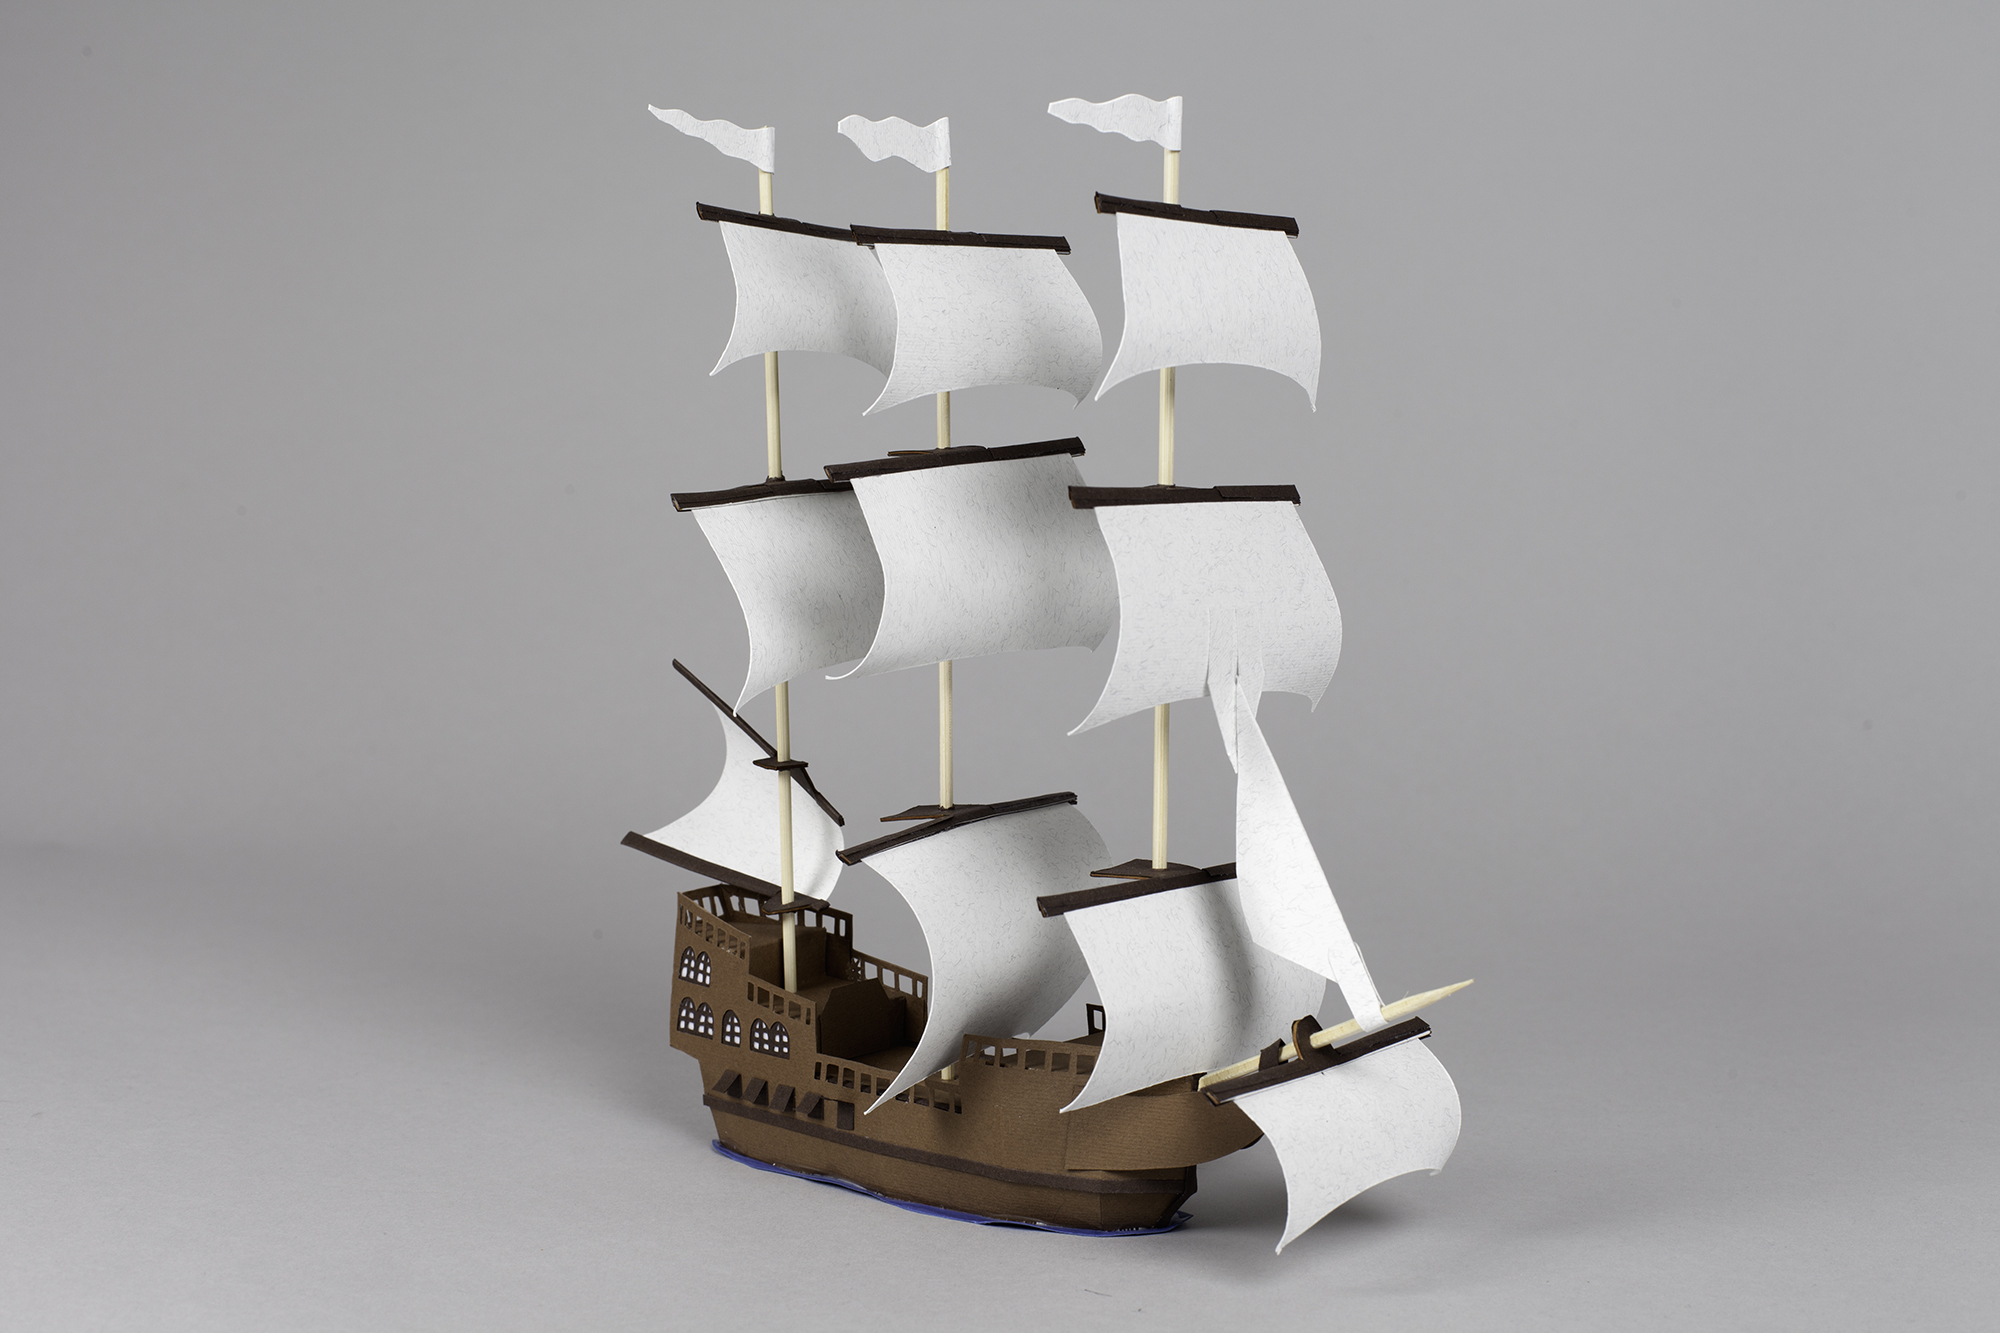 3D Letters for Silk Road Film Festival Crafted From Paper - Europe Ship